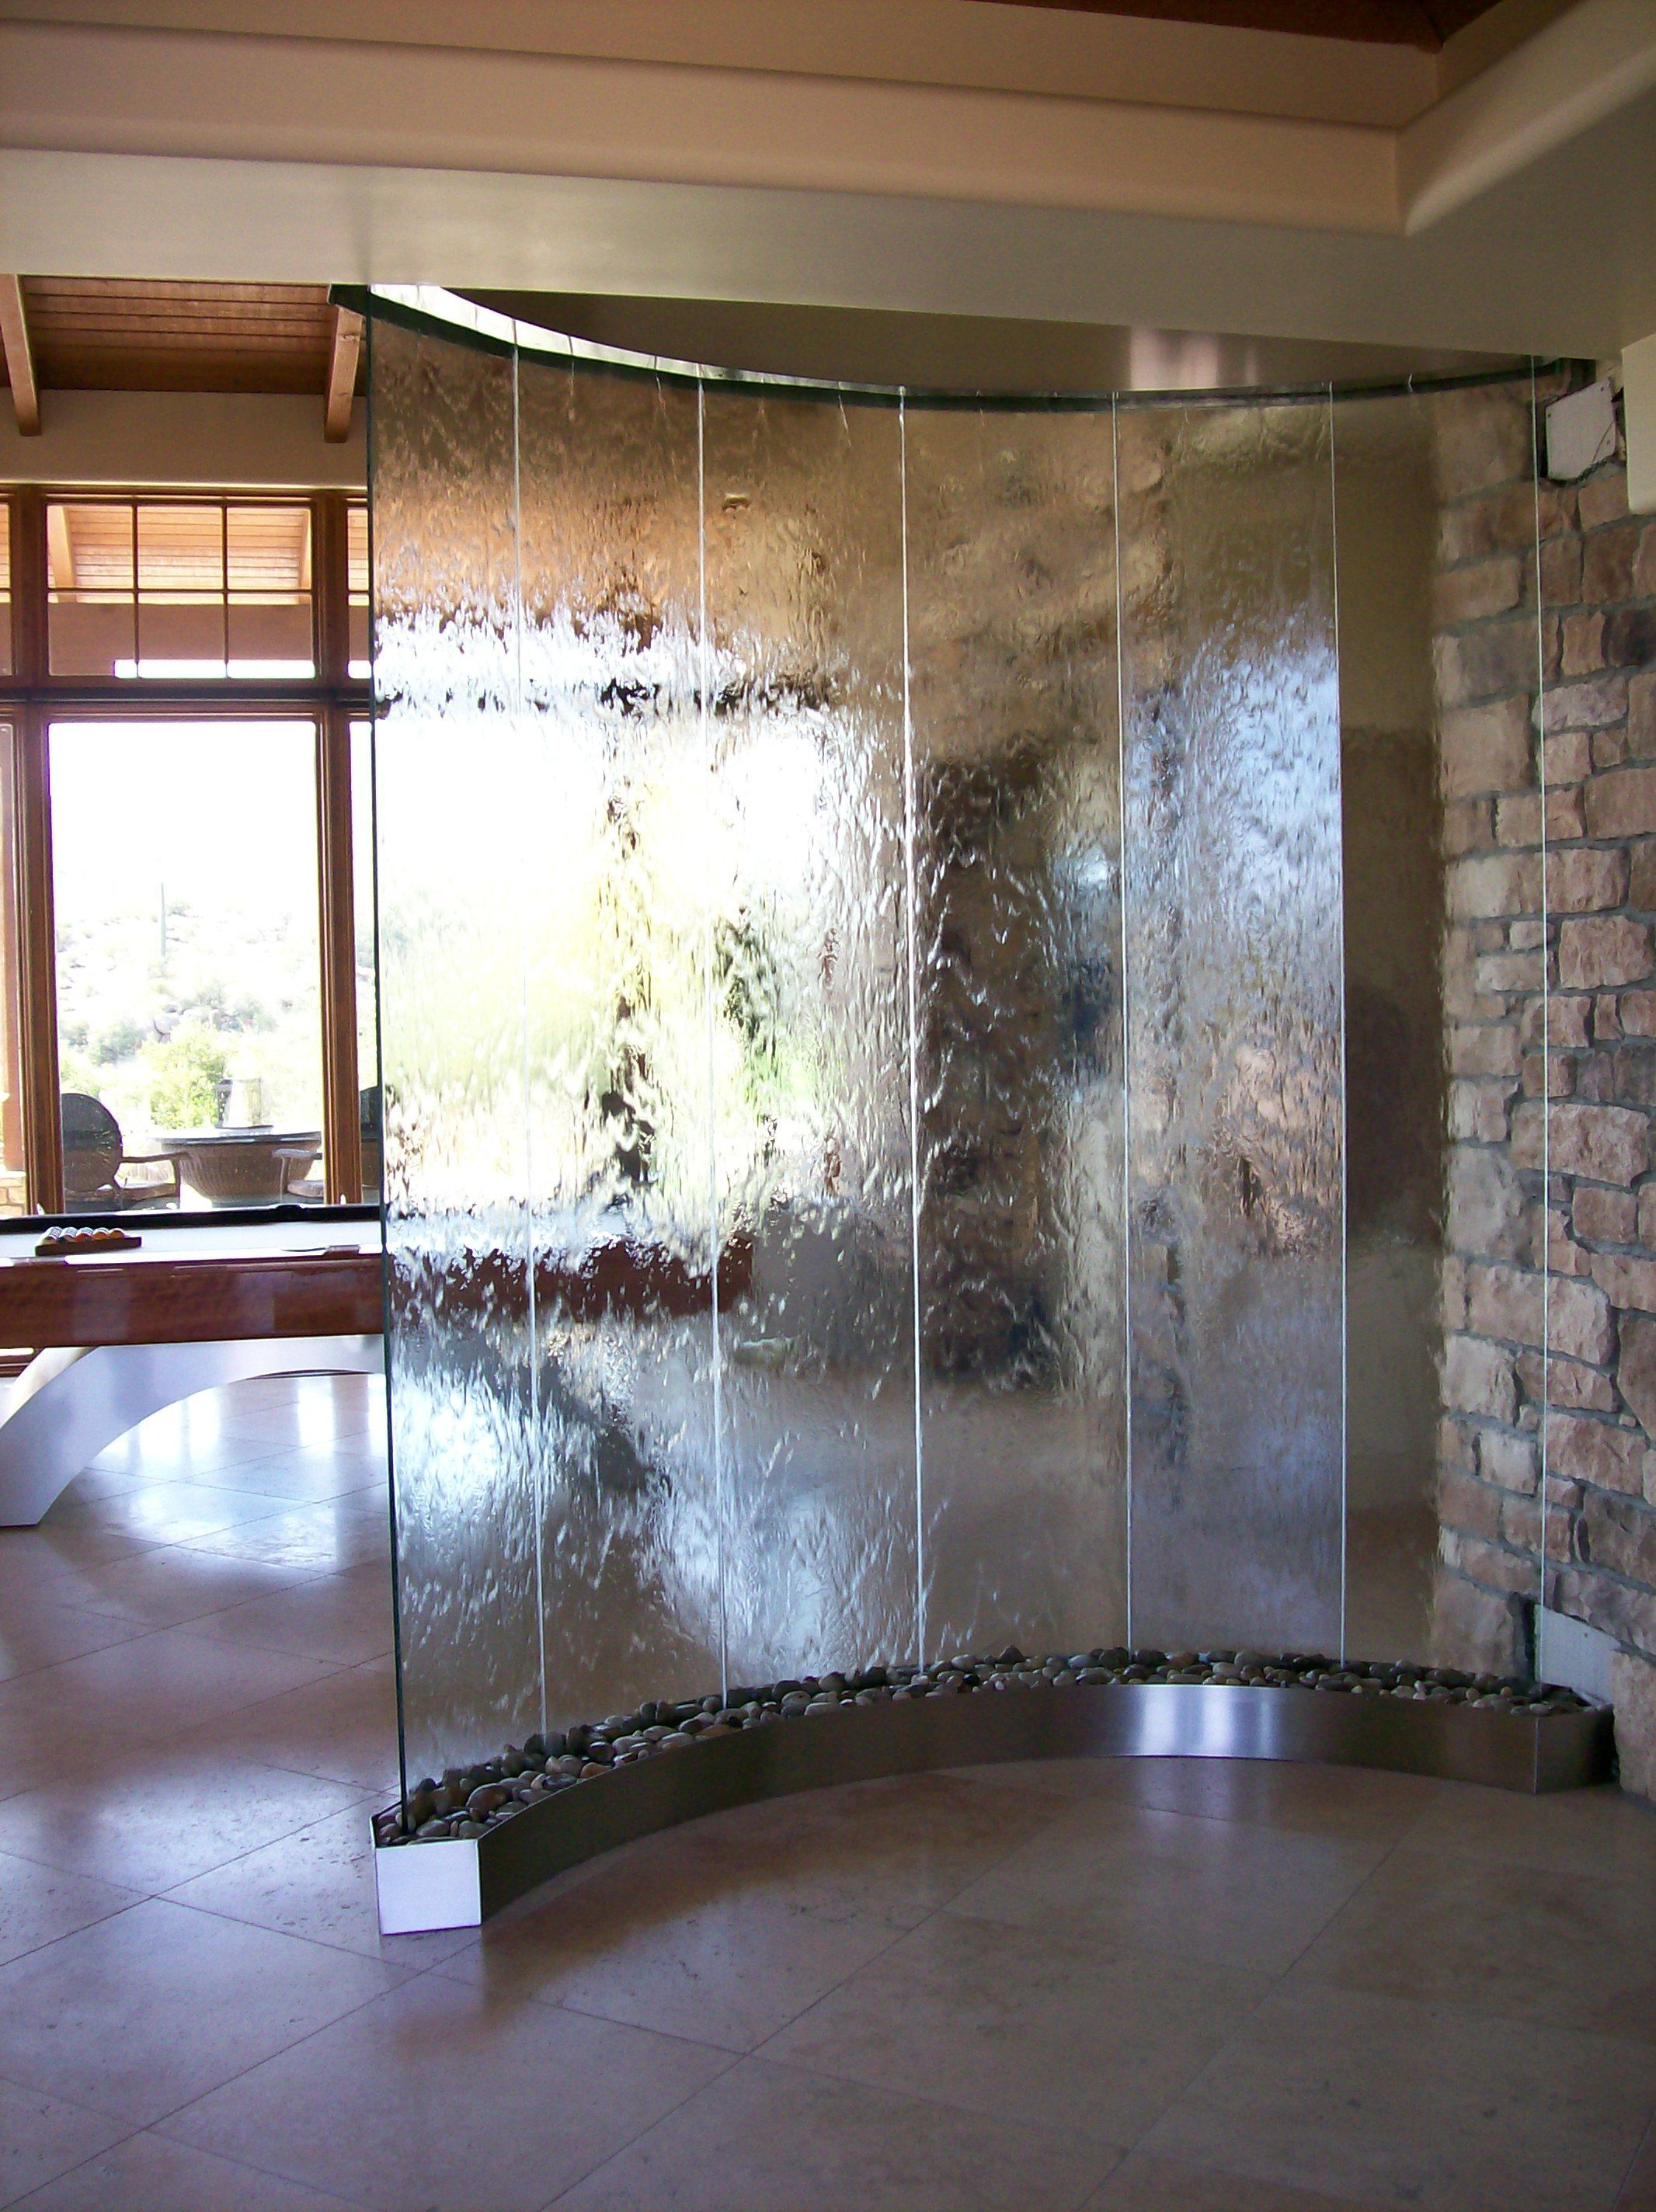 Glass Wall Fountains Indoor | Wall Fountains | Pinterest | Wall ...